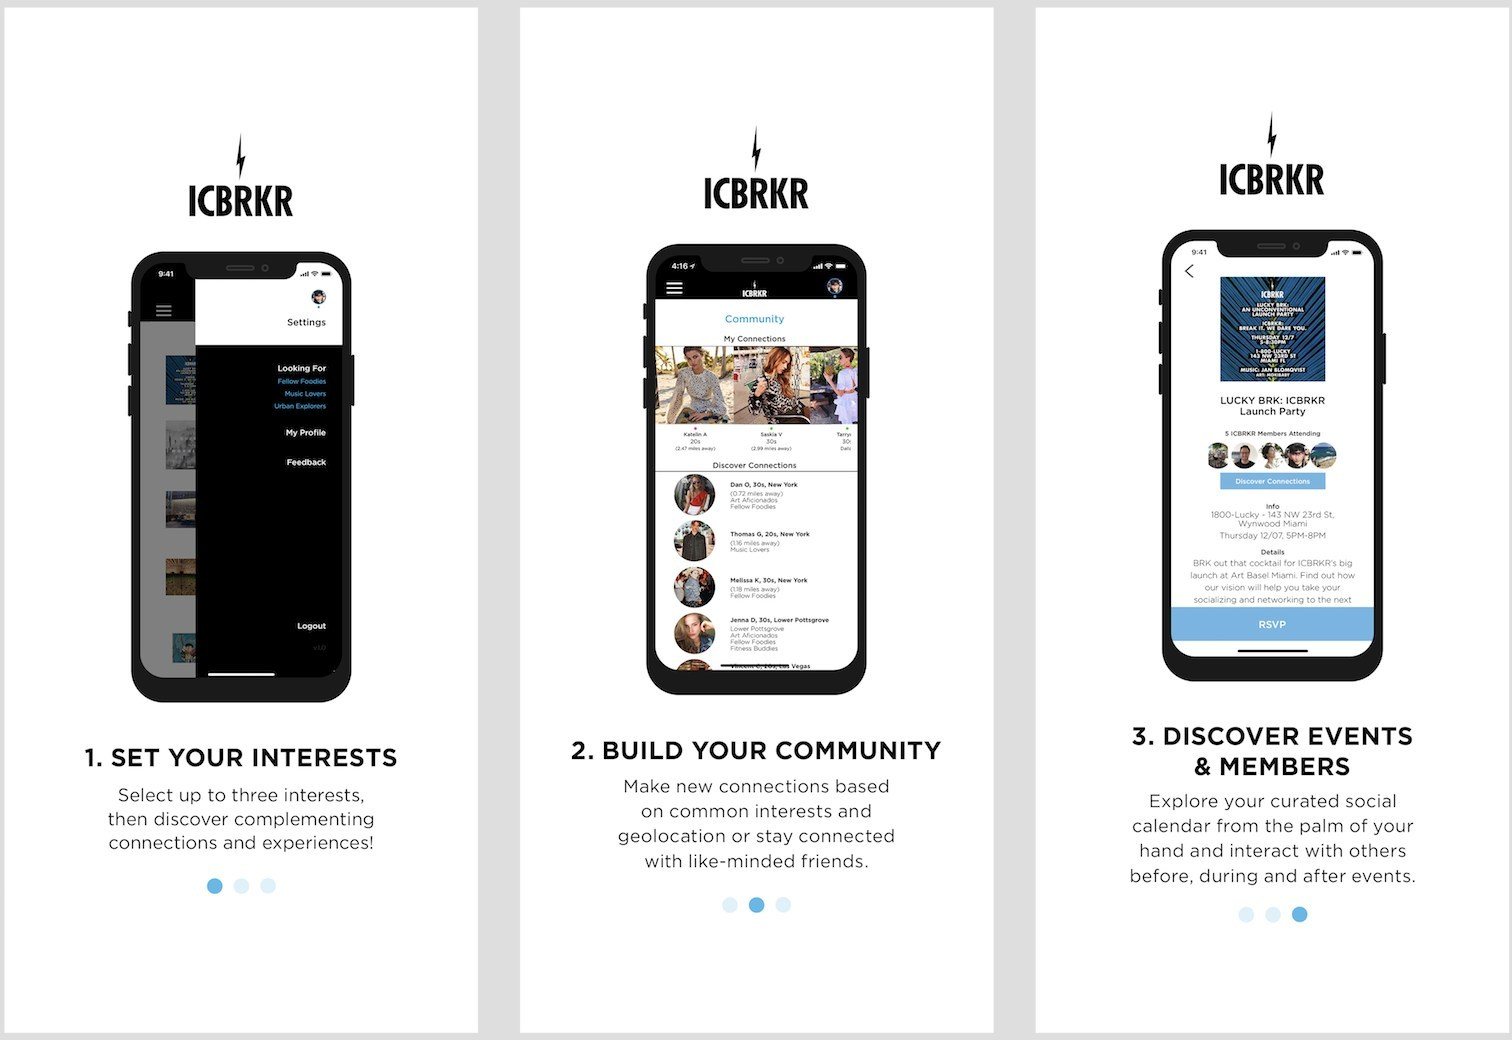 ICBRKR Announces the Social Media Platform That Won't Sell You to the Highest Bidder